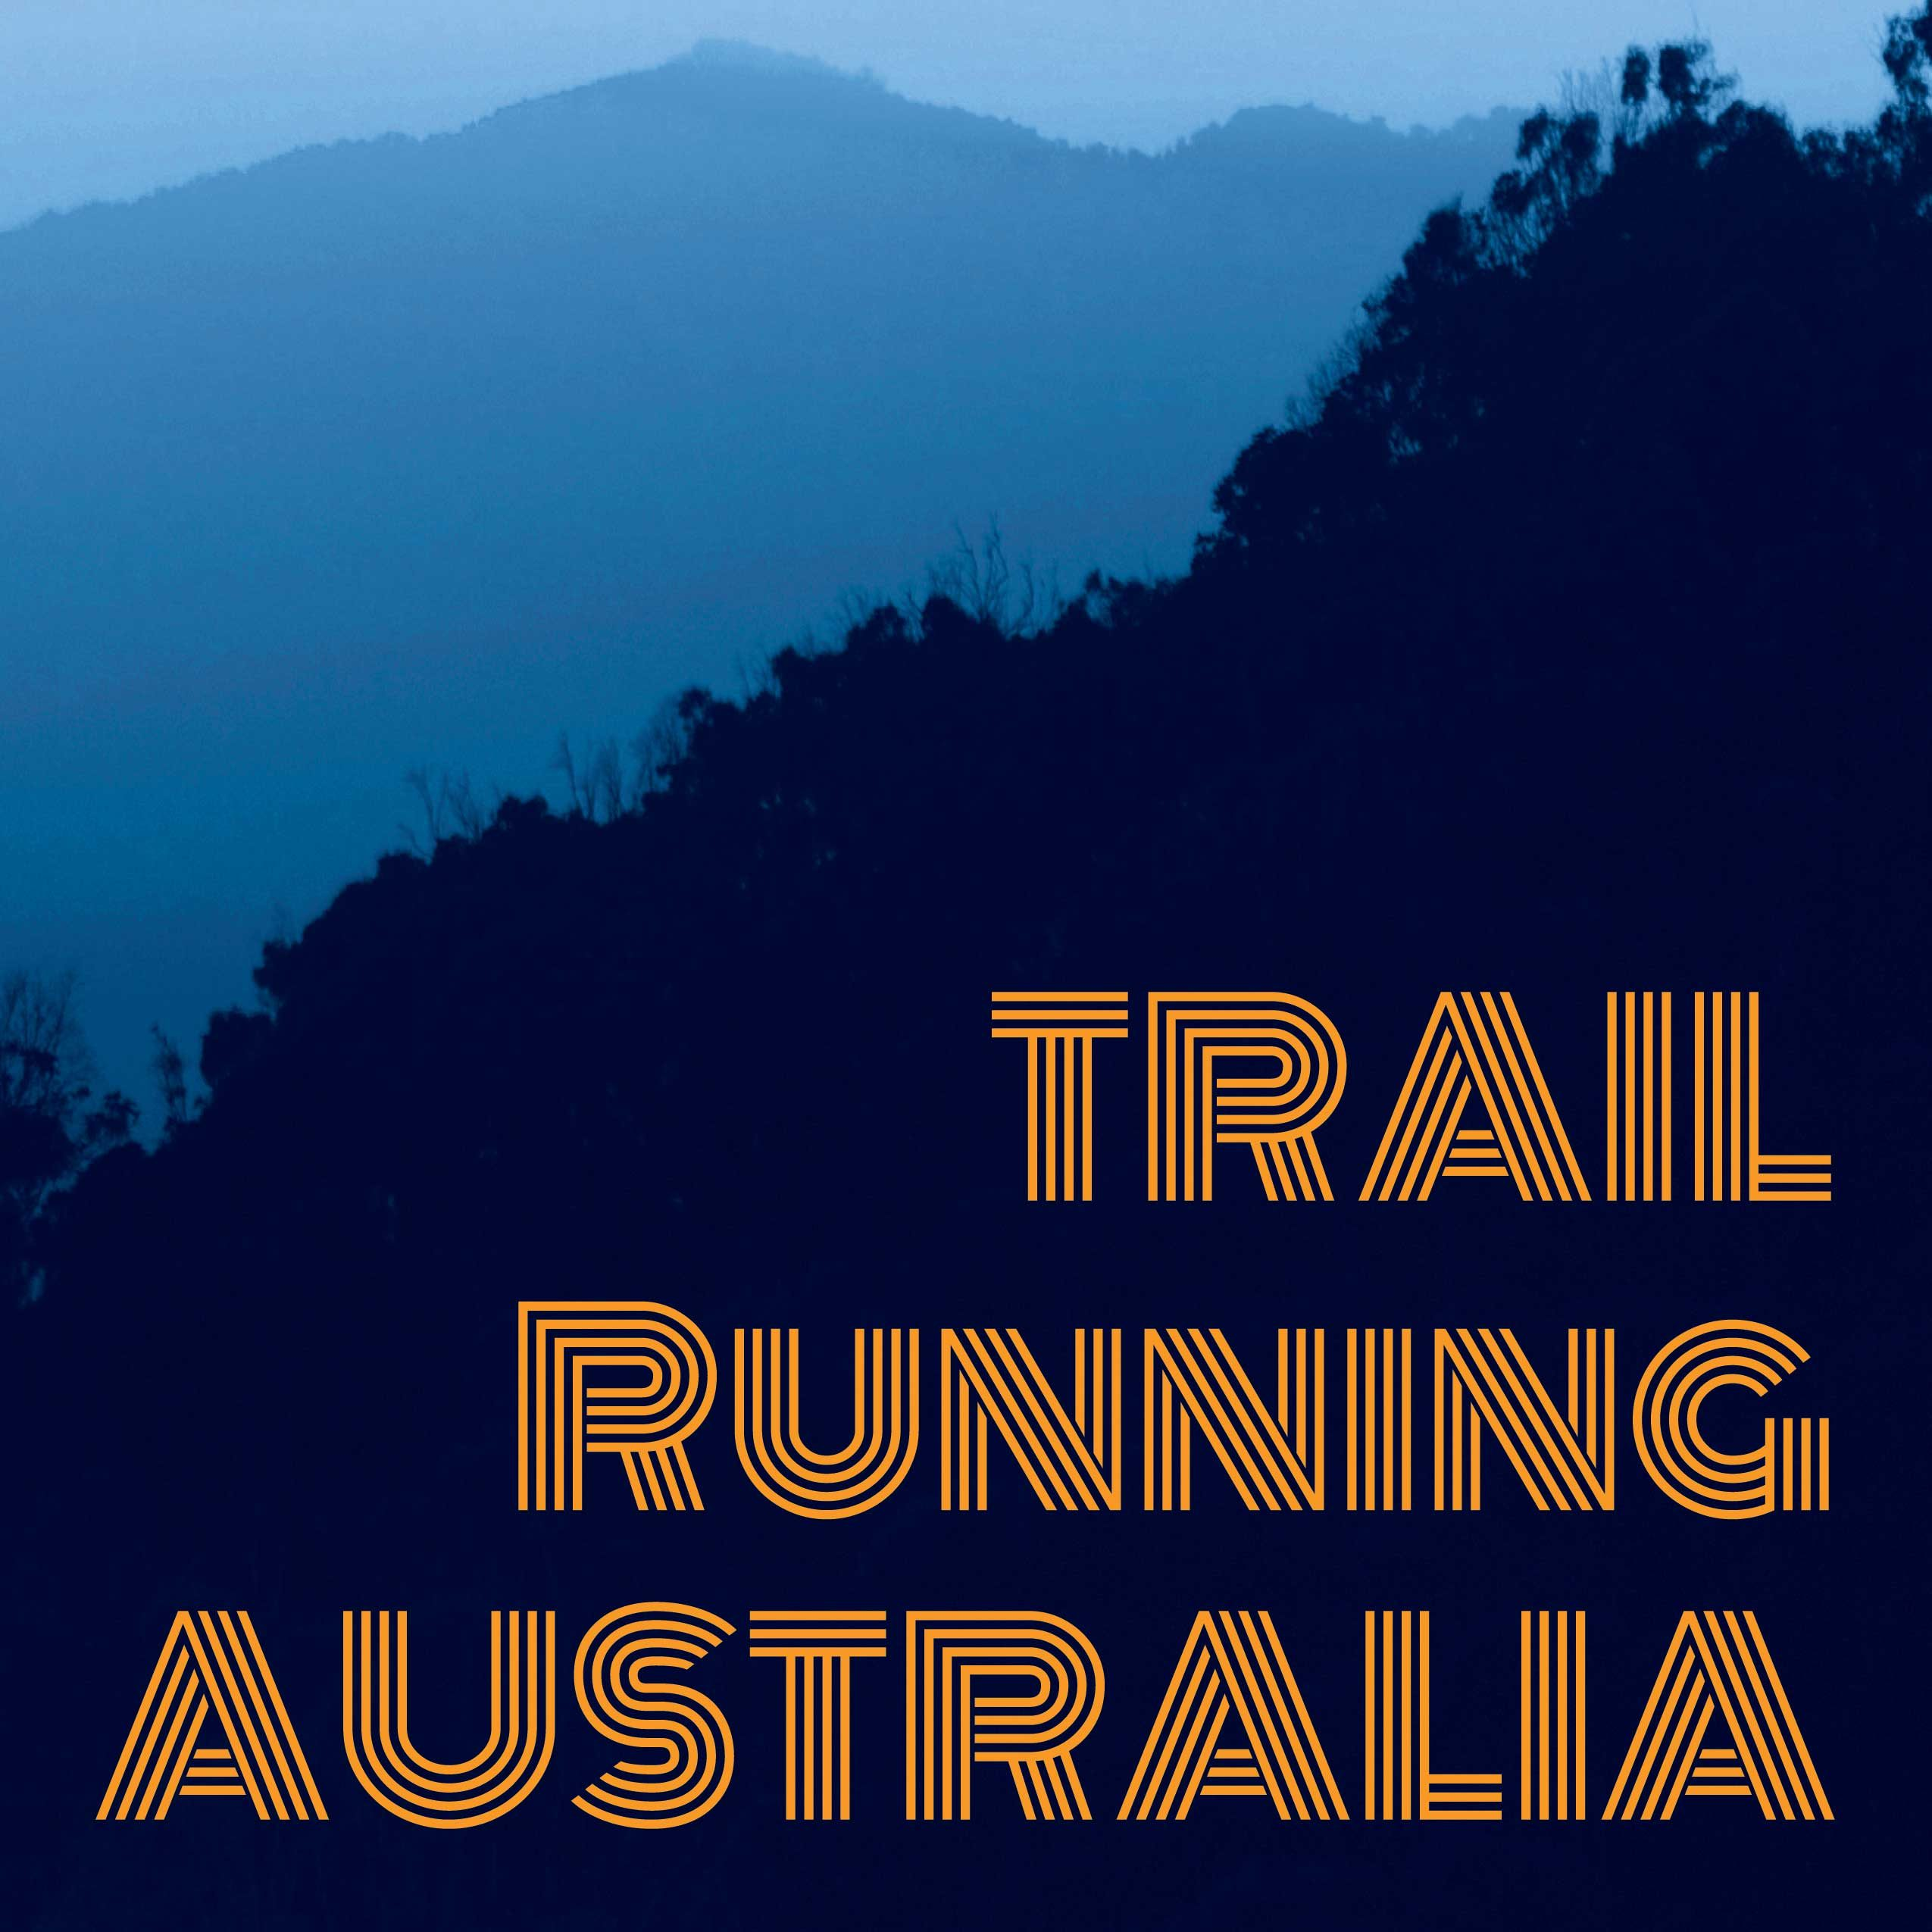 Trail Running Australia